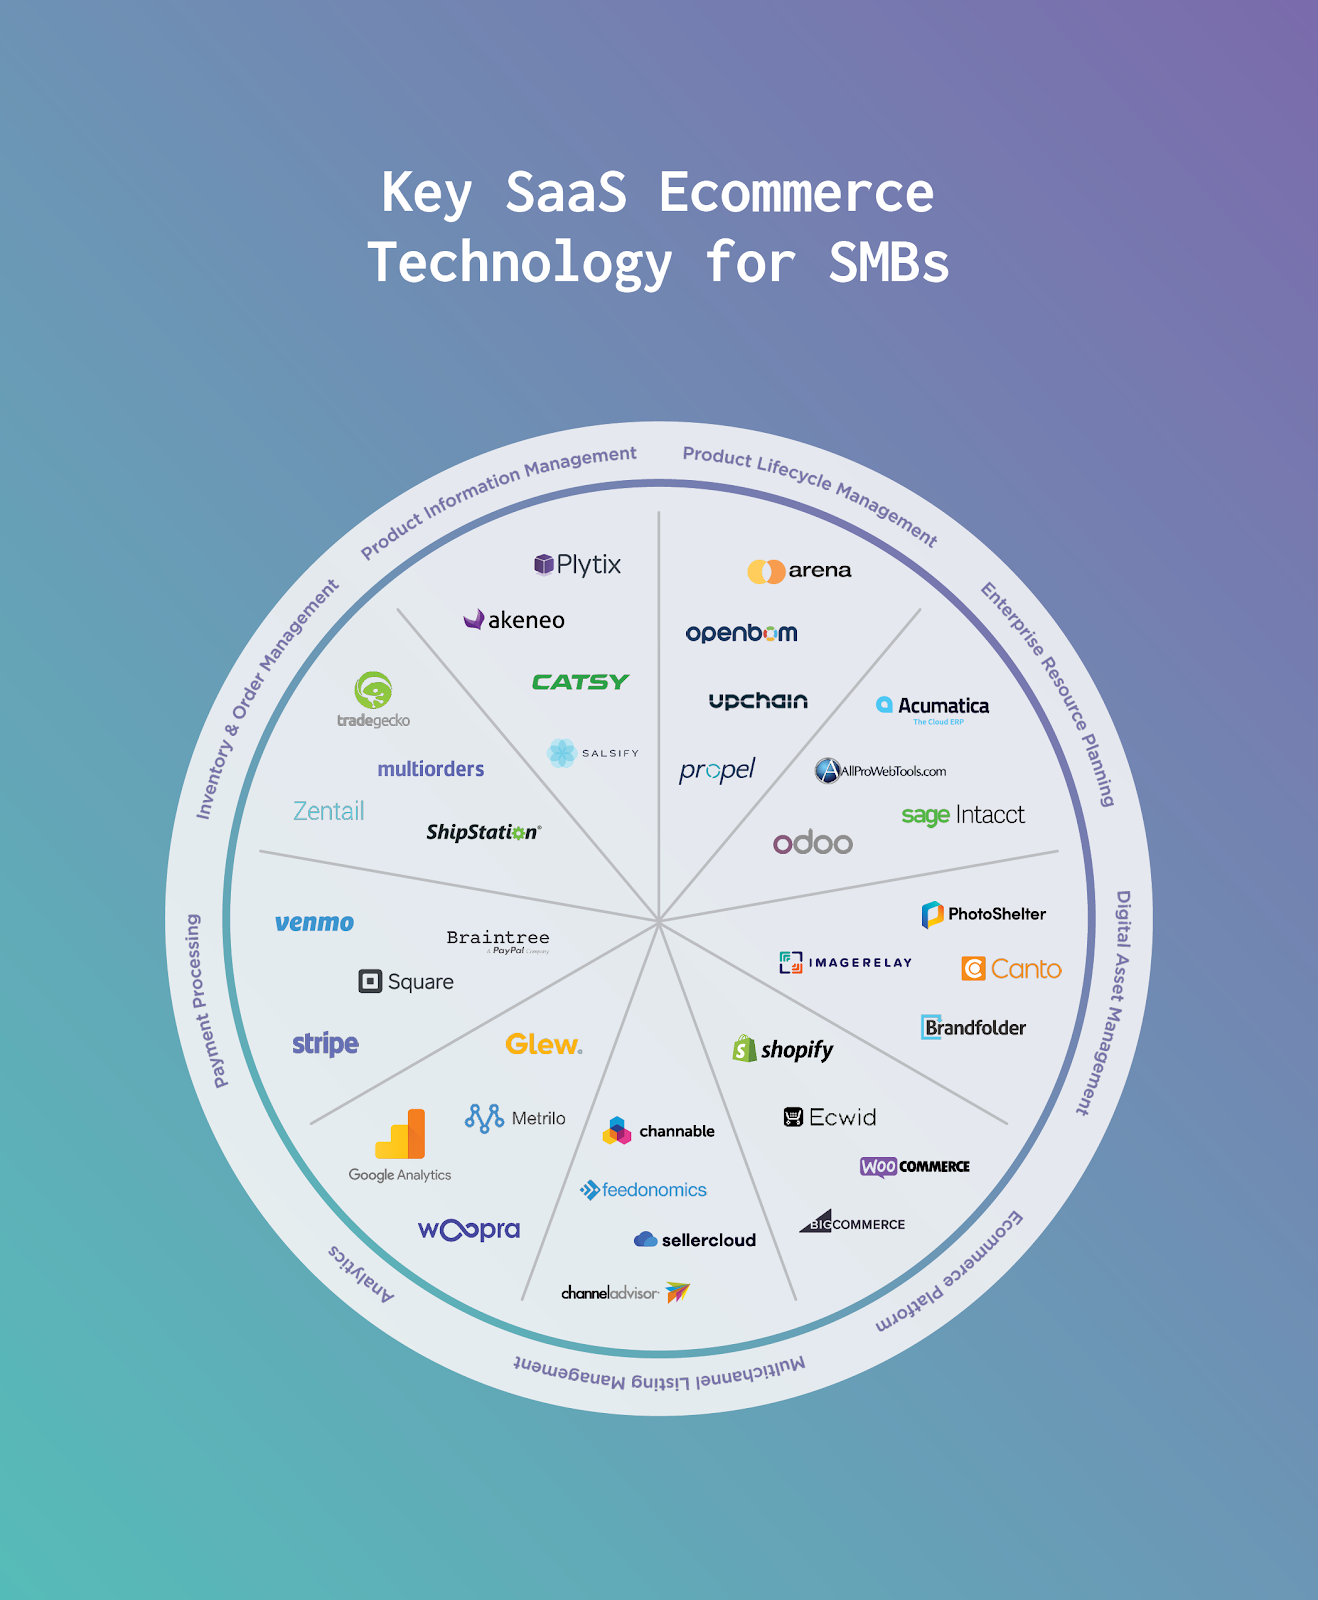 key saas ecommerce technology for smbs